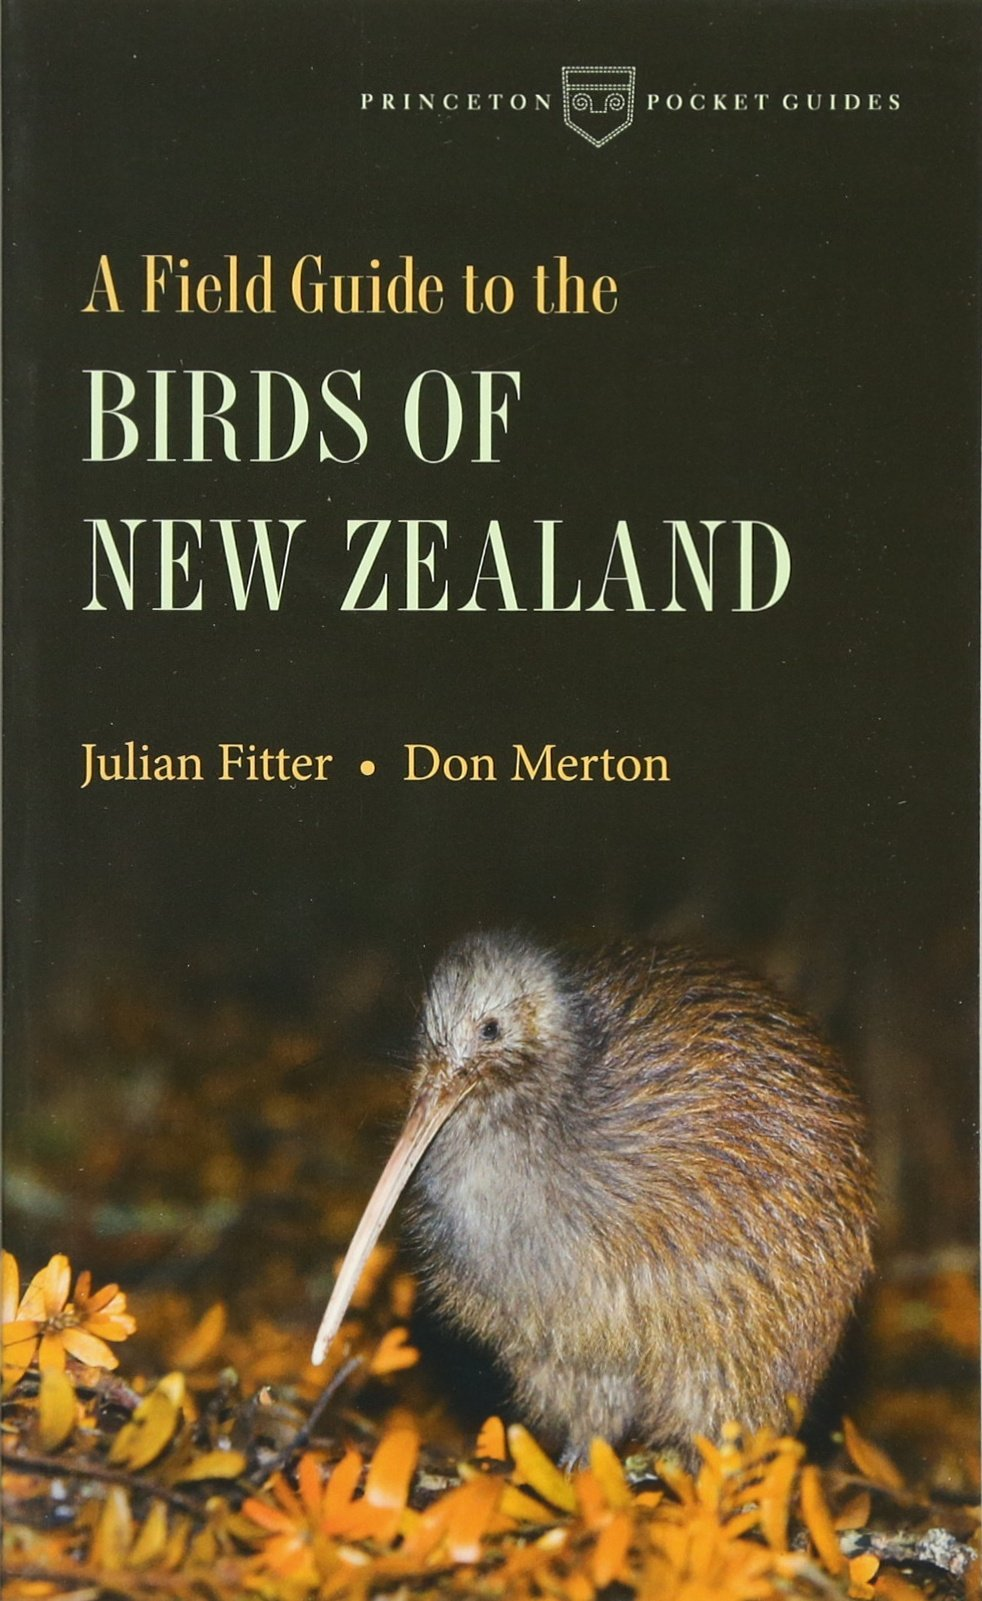 A Field Guide to the Birds of New Zealand (Princeton Pocket Guides) pdf epub